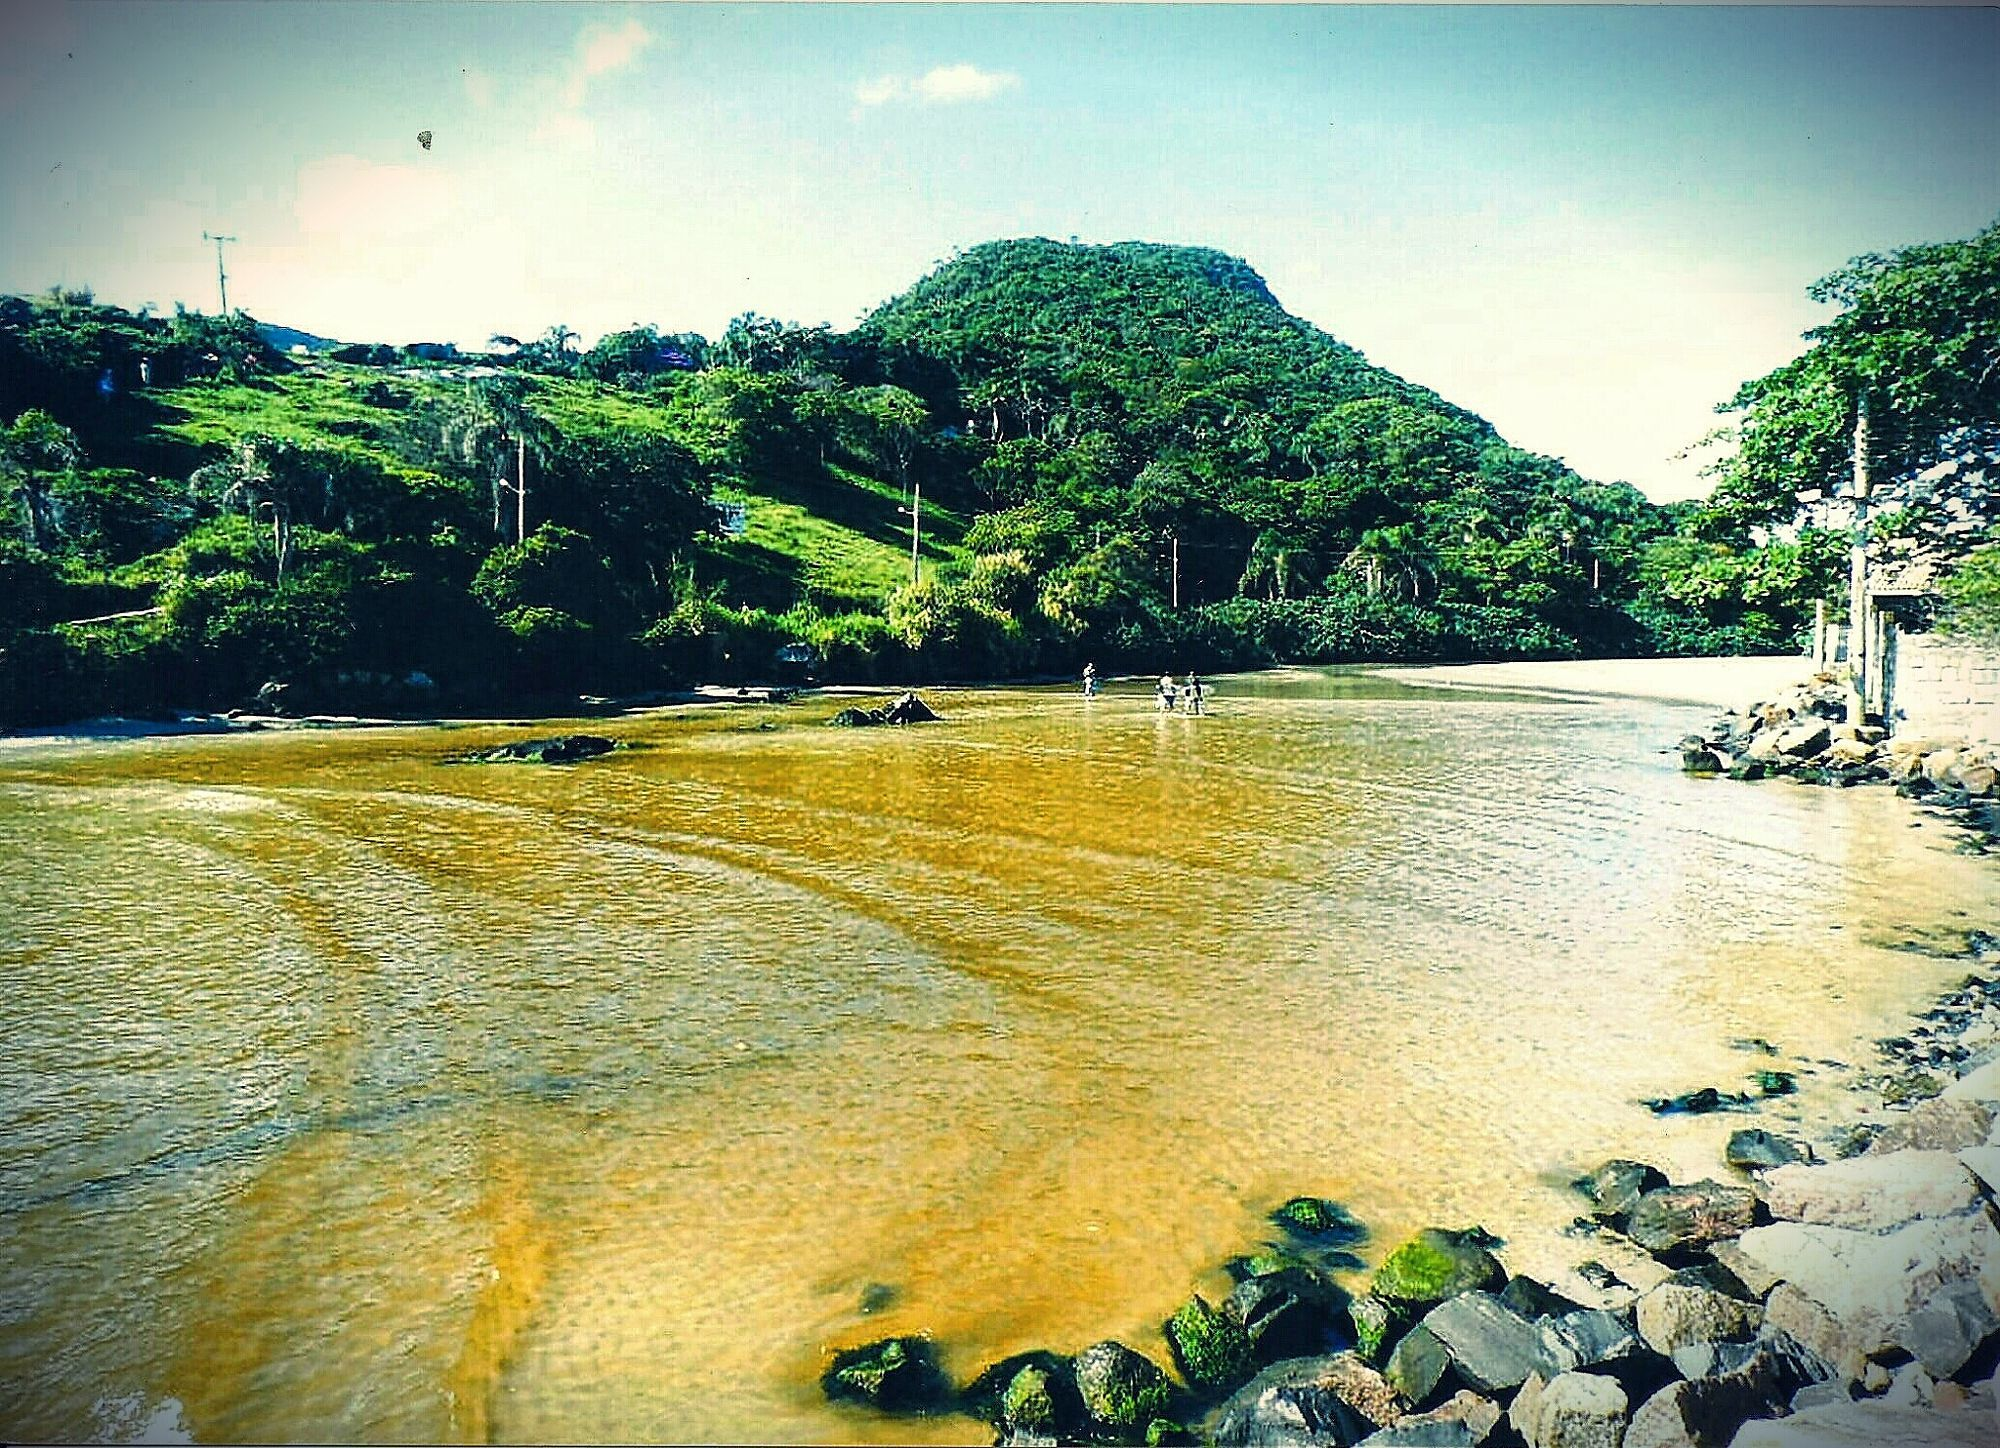 Florianópolis  Travel photo by ElieserBotelhodaSilva http://rarme.com/?F9gZi